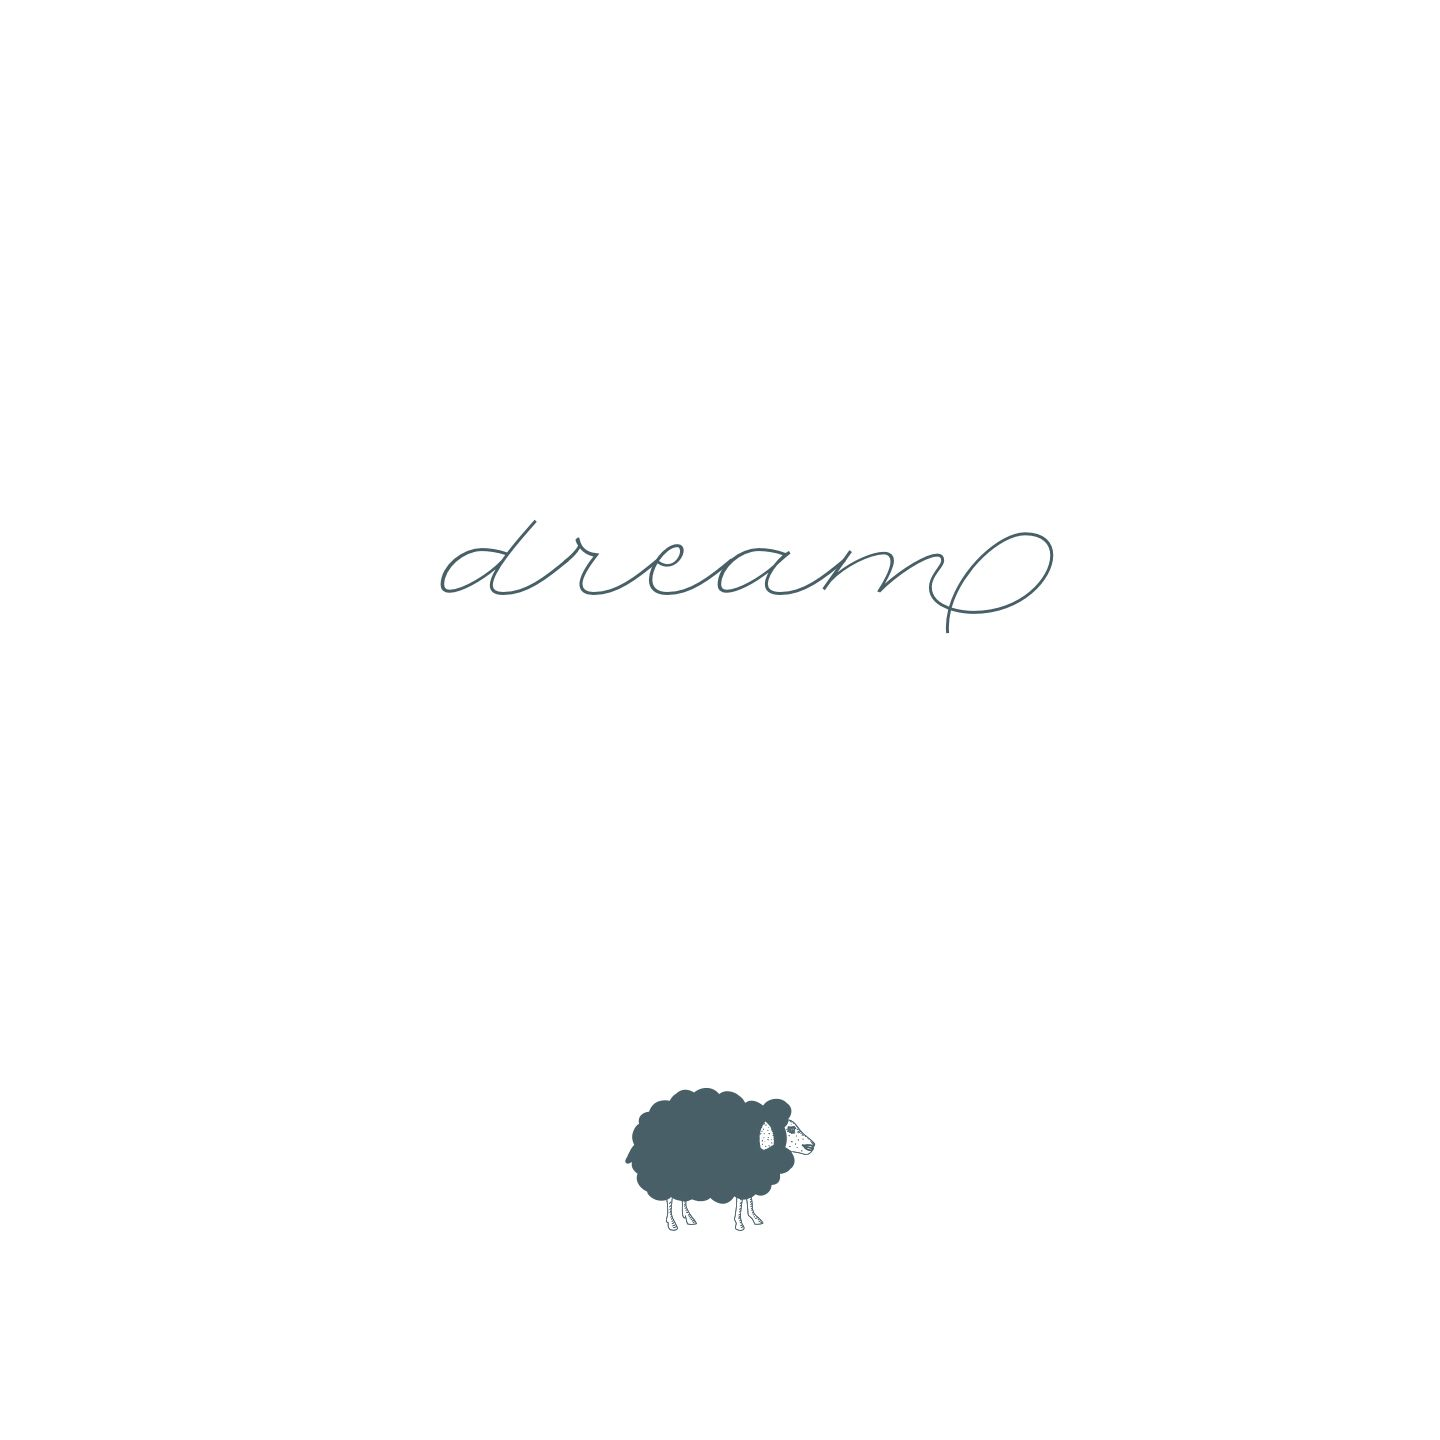 Dream quote #babyquotes #mymamaproject #gianlisa #mymamabag http://gianlisa.com/mymama-shop/